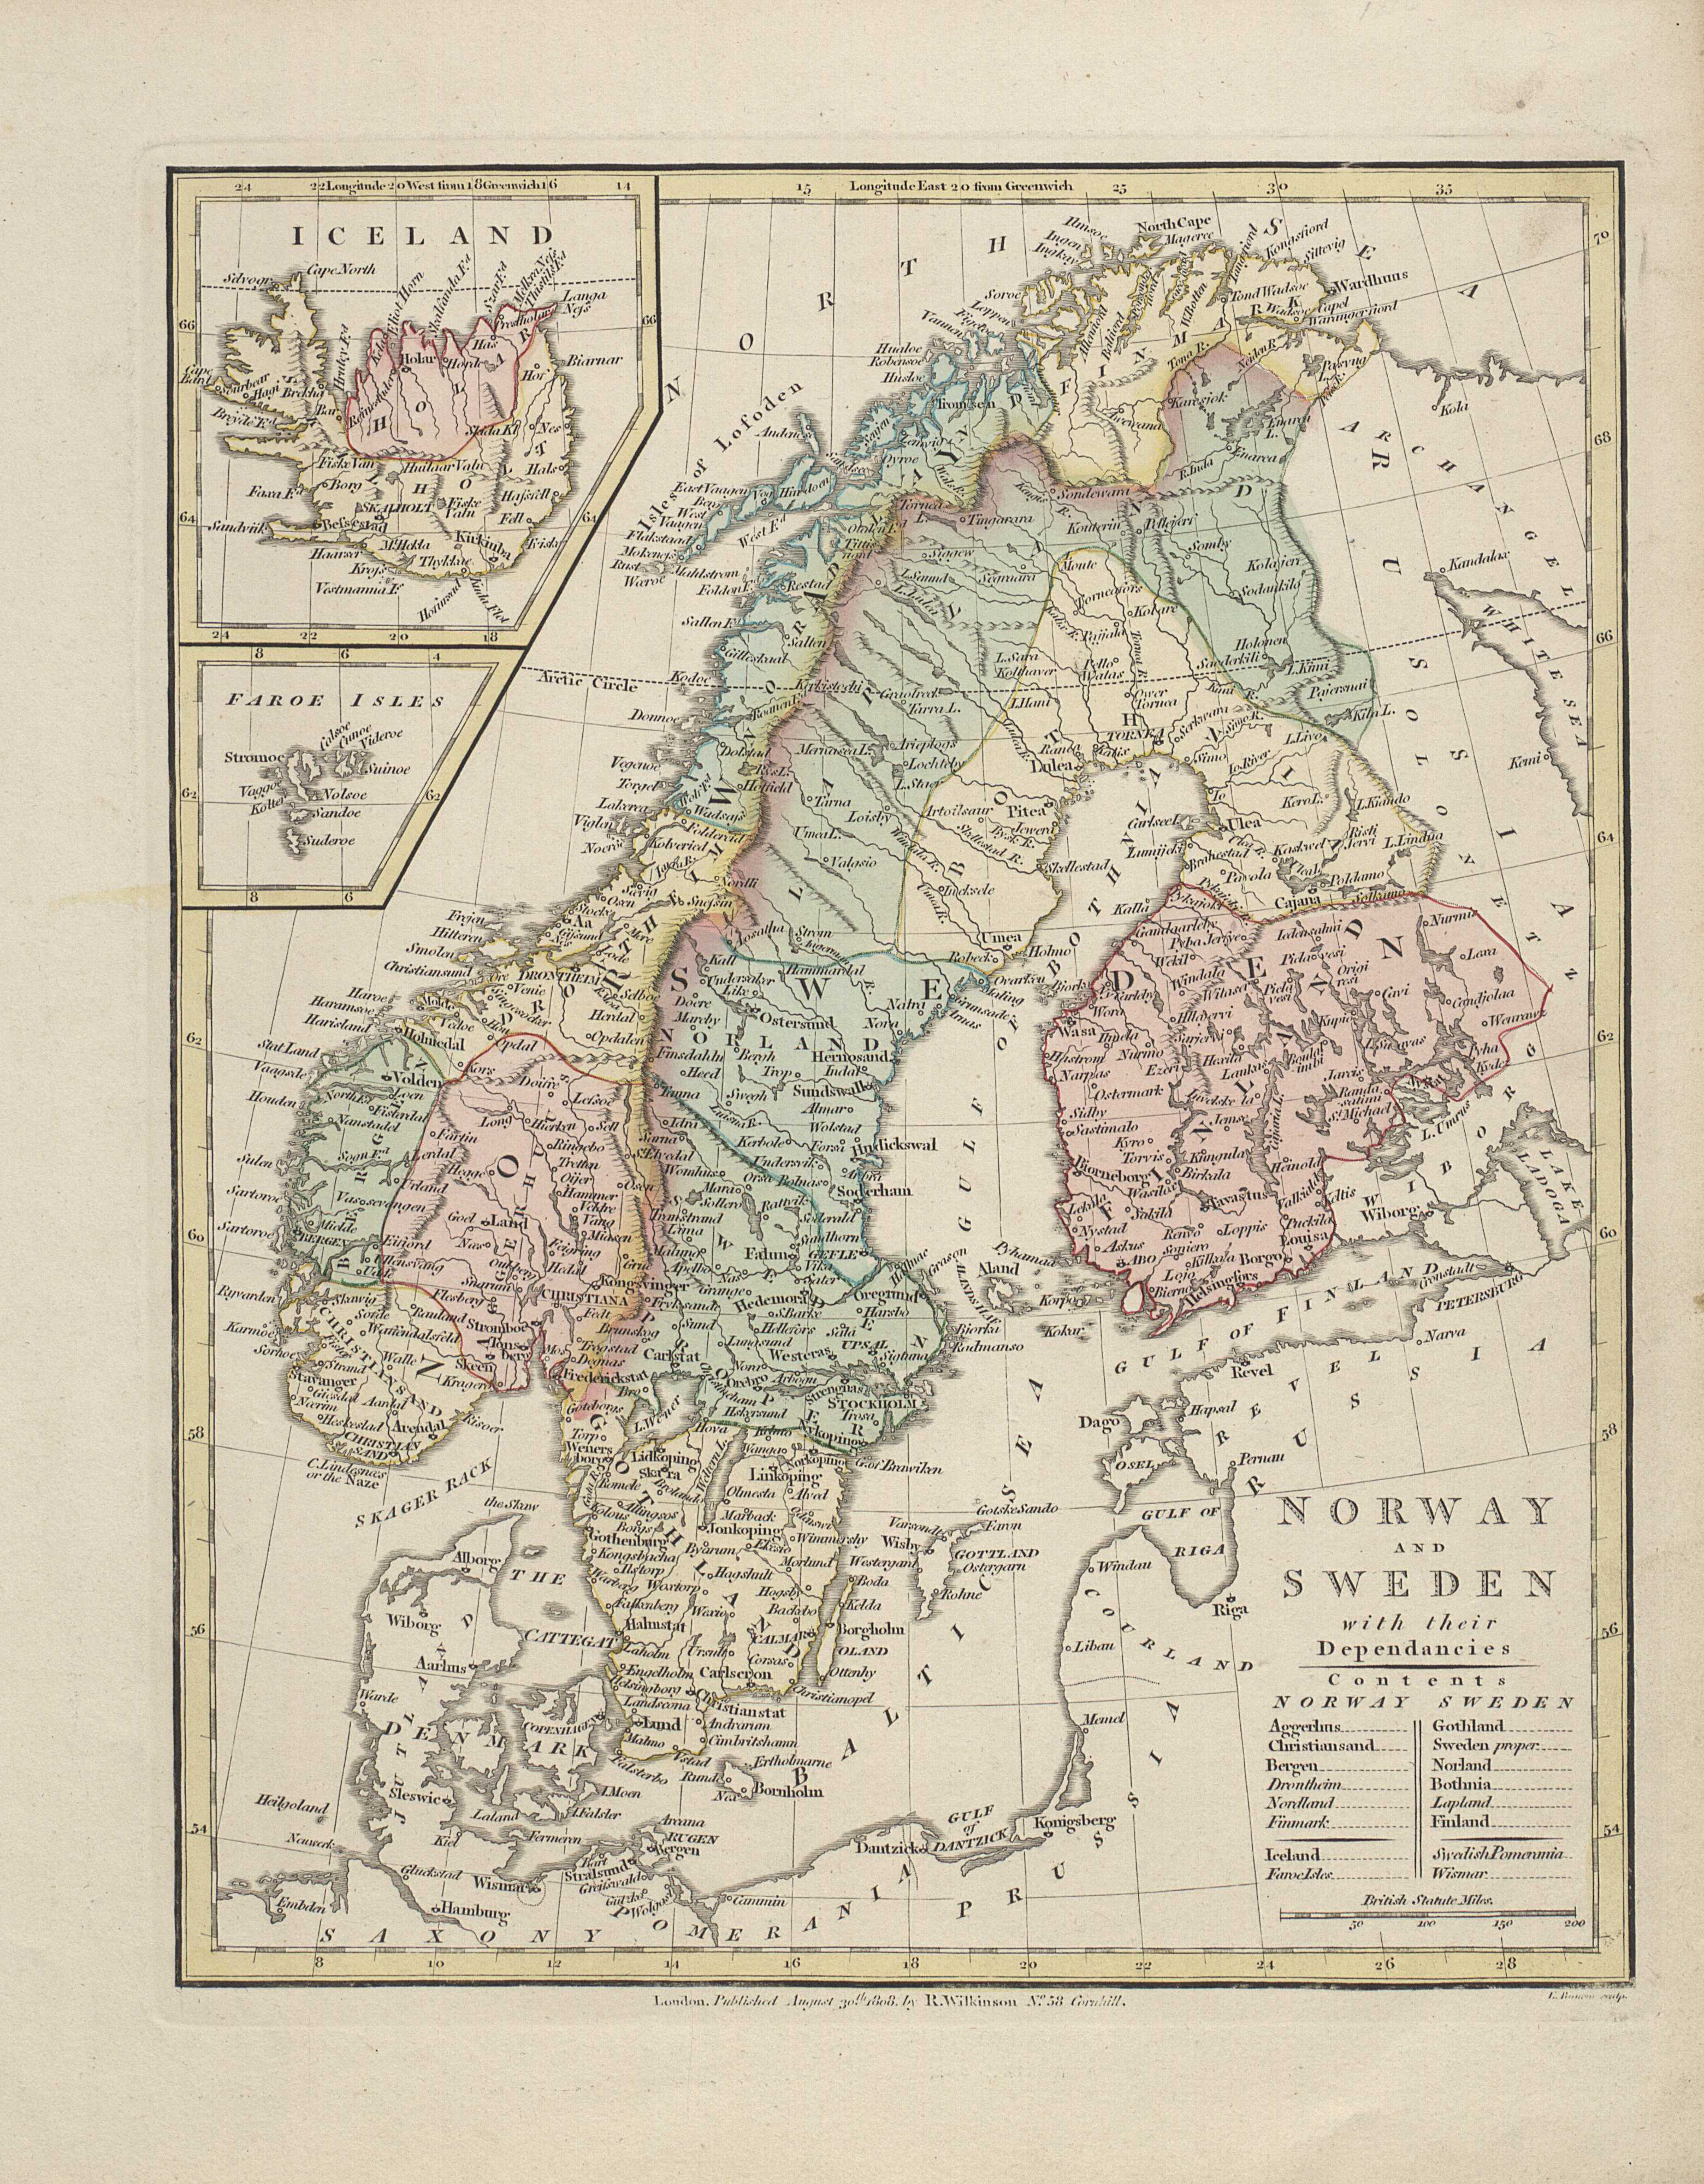 Norway and Sweden with their dependancies